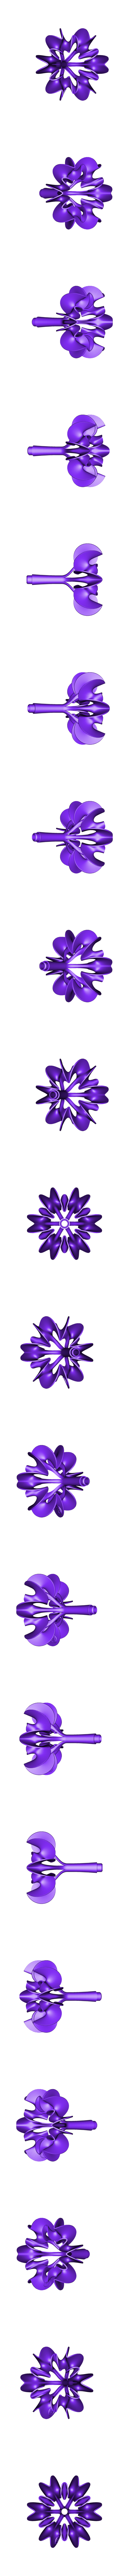 Blossoming_Tree_-B.stl Download free STL file Ghostly Wave Loop • 3D printable model, Pwenyrr